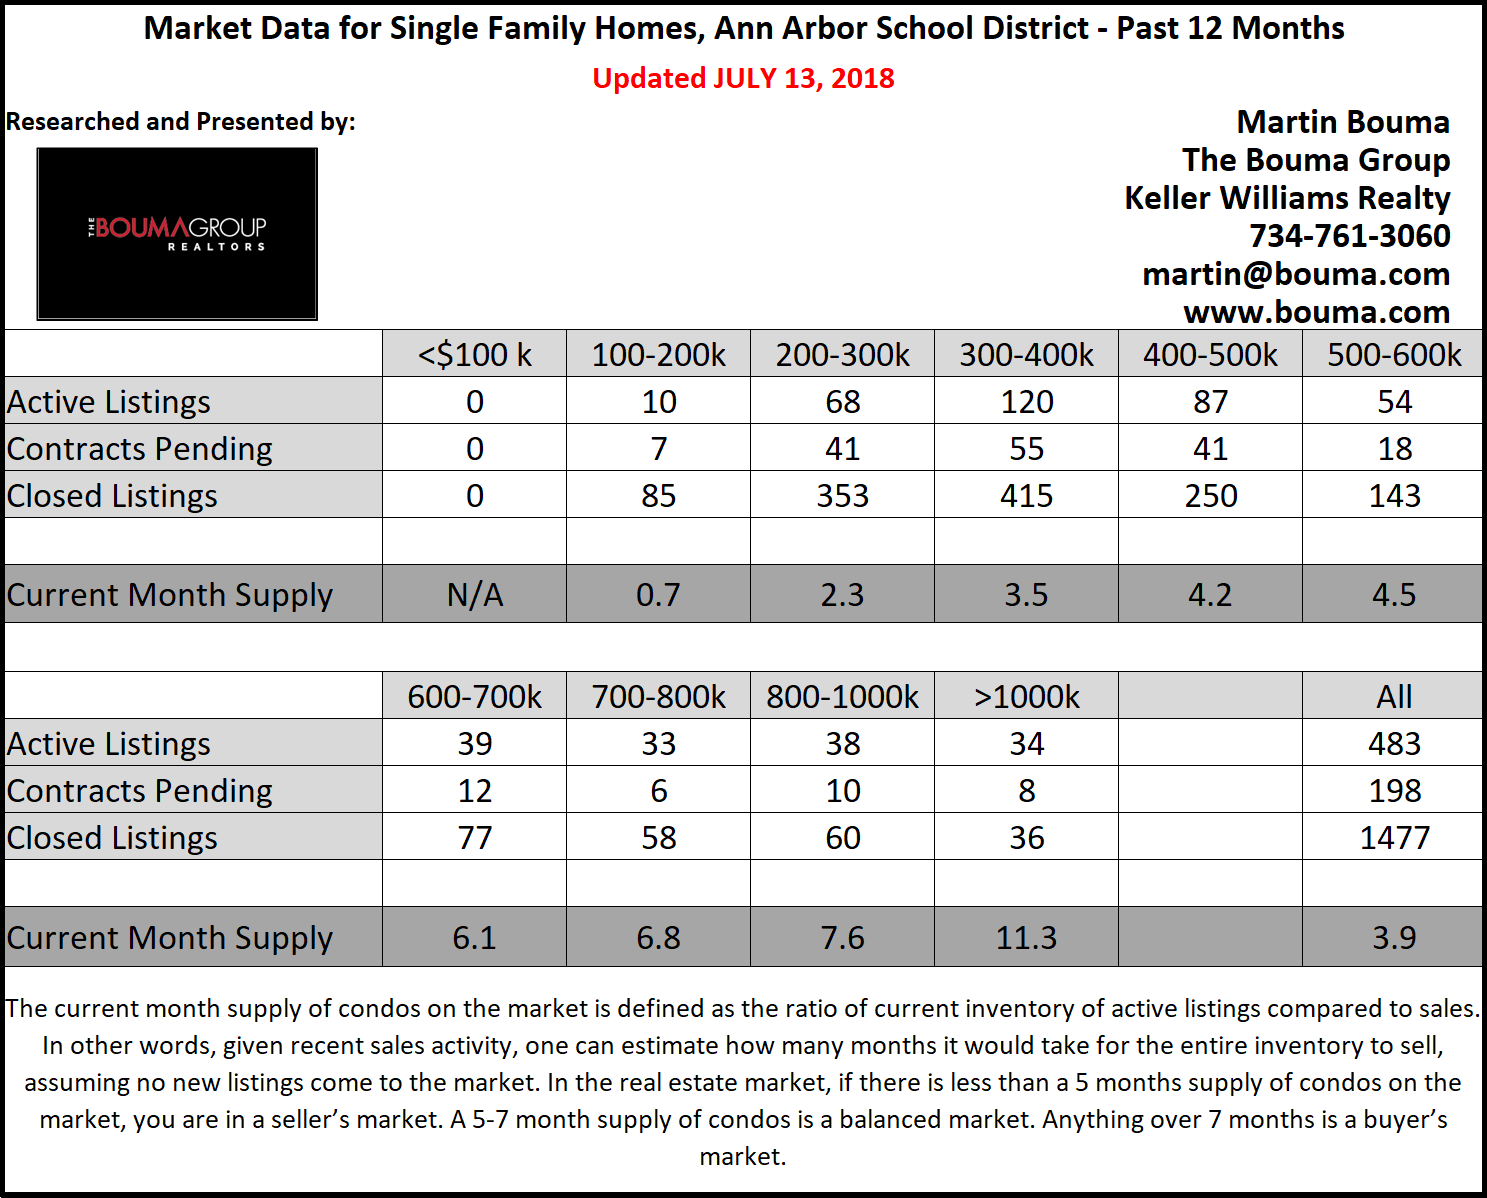 Ann Arbor Residential Real Estate Report for June